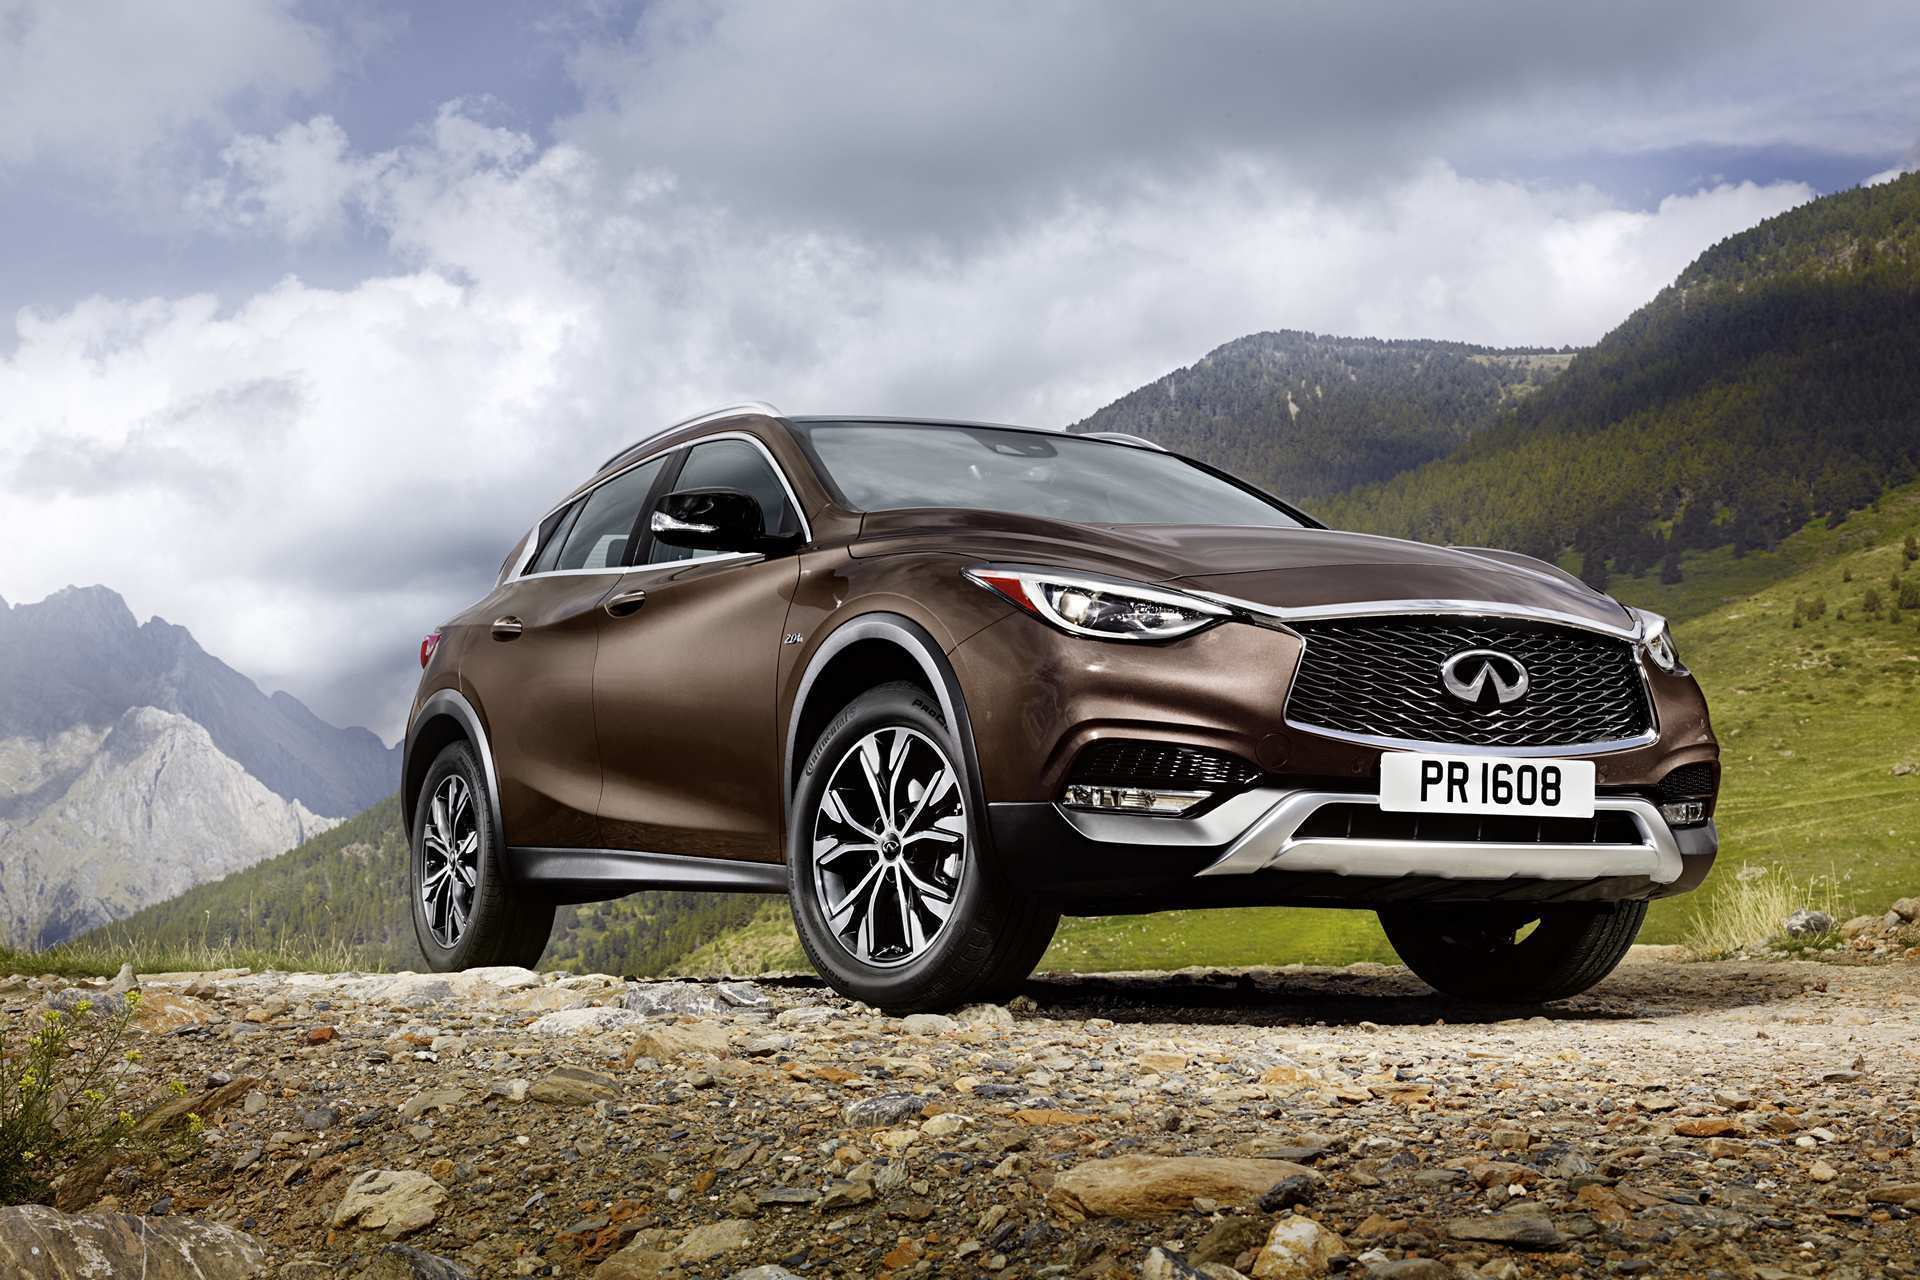 45 Best Review 2020 Infiniti Qx30 Dimensions Redesign by 2020 Infiniti Qx30 Dimensions